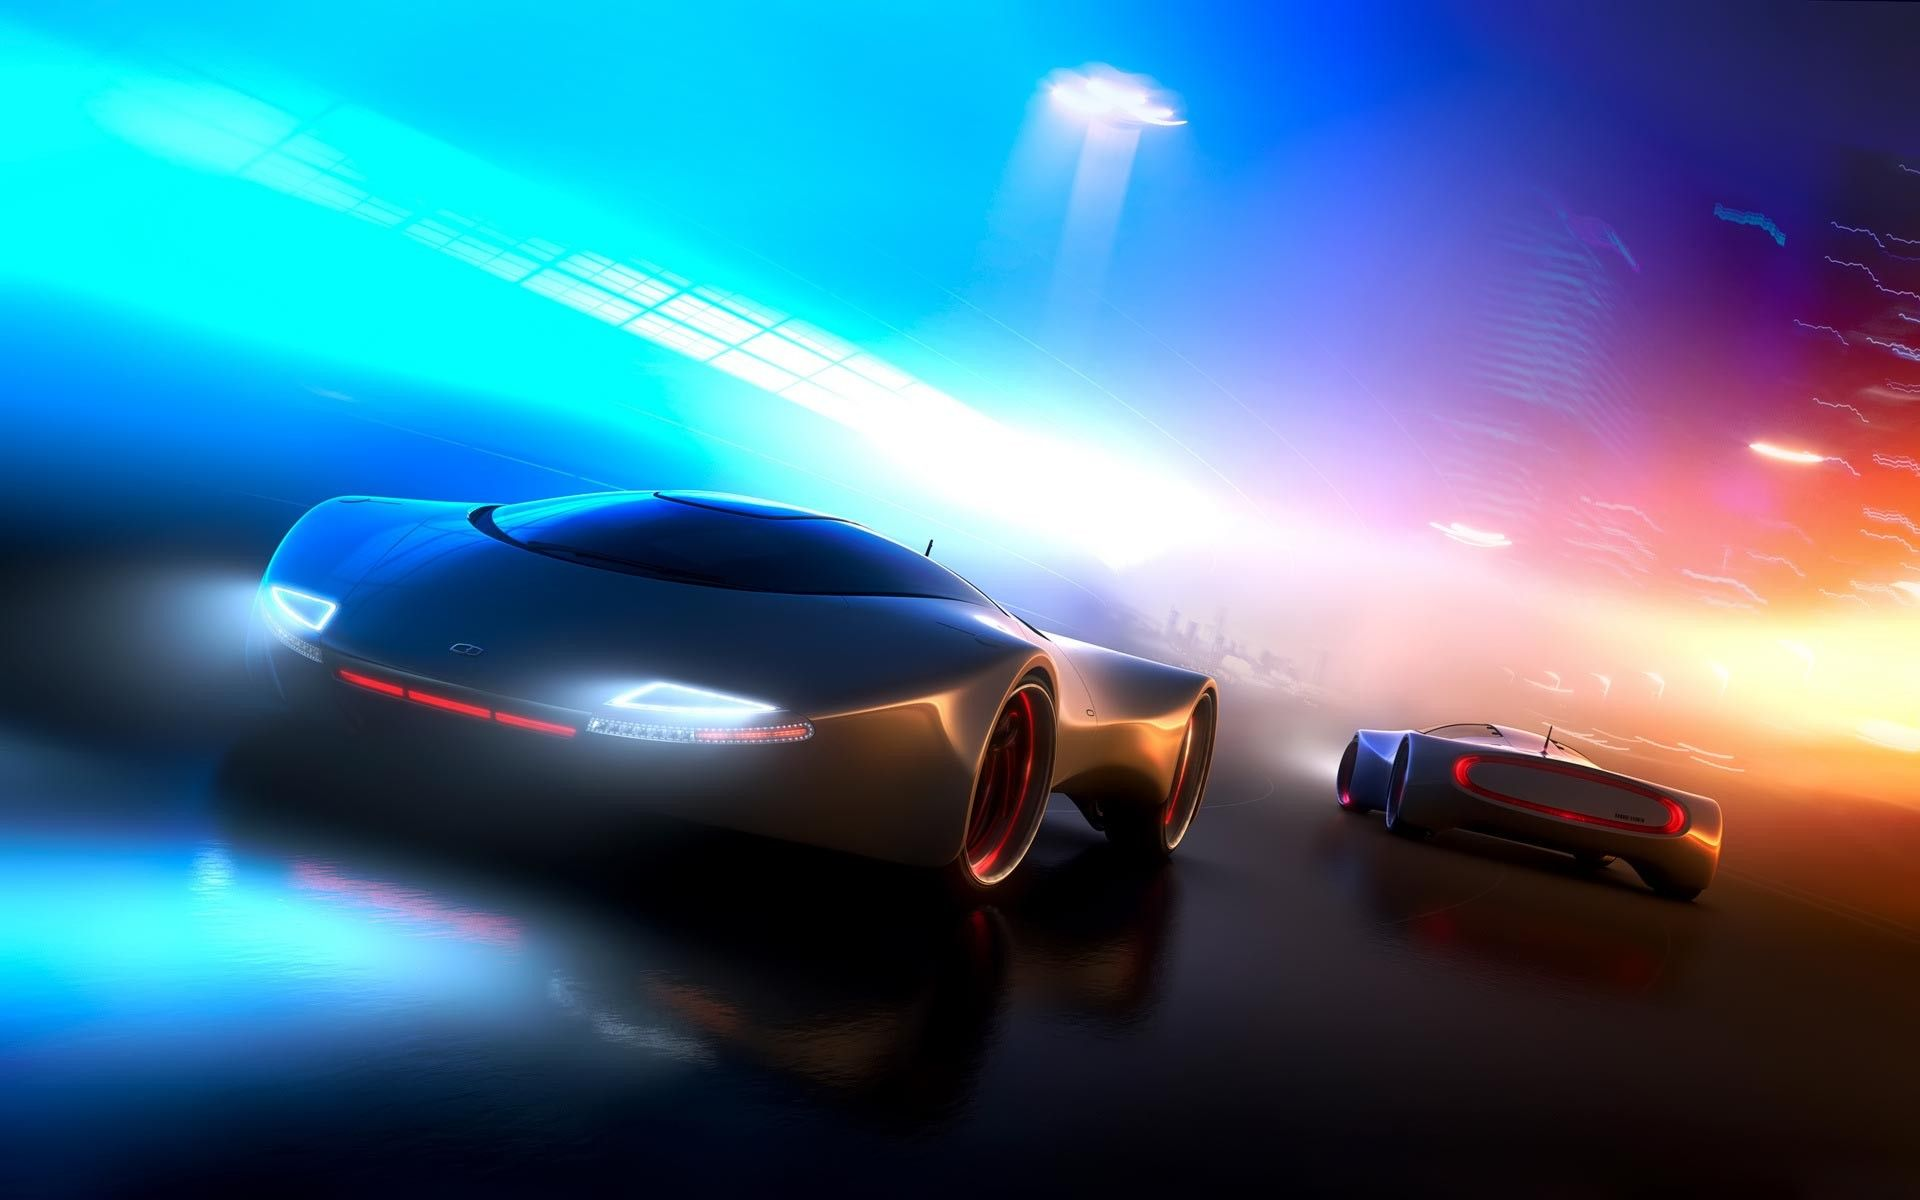 Hd Car Wallpapers Include Windows 7 8 Transformers Cars Transformers Jazz Transformers